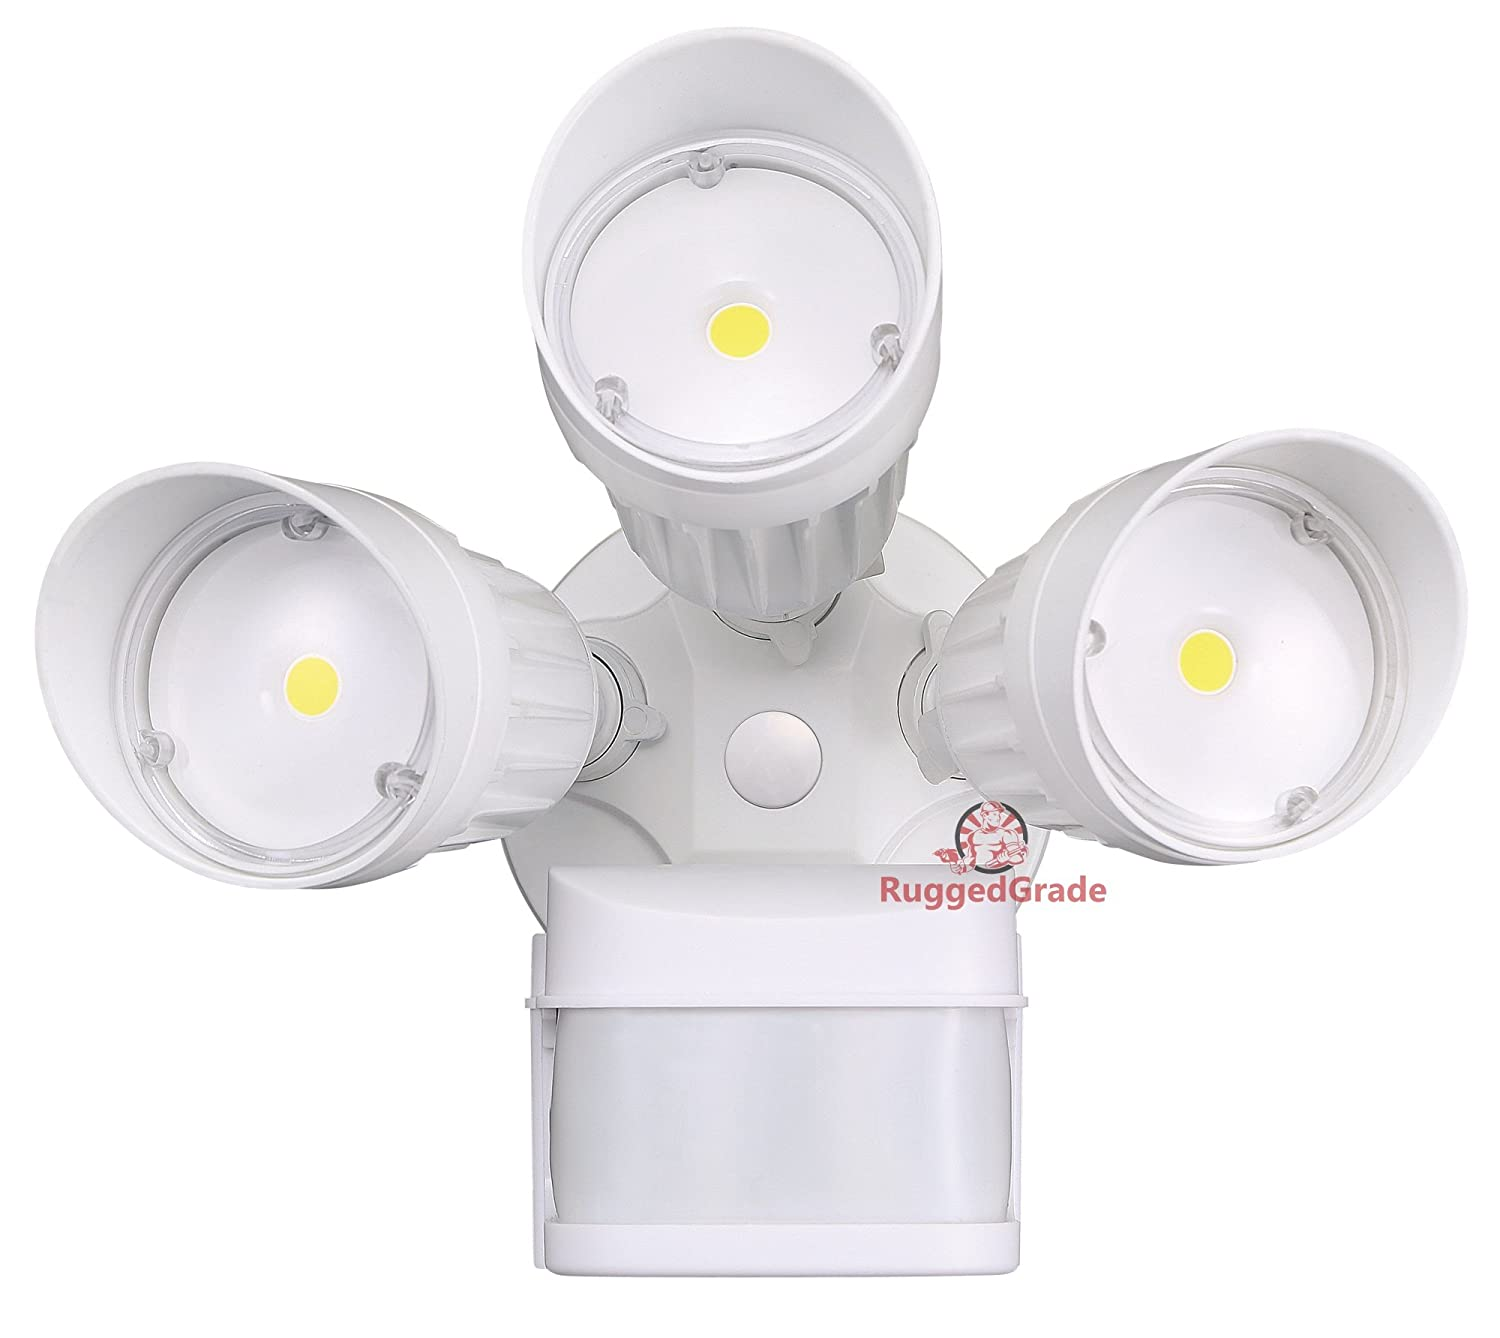 30 Watt LED Motion Sensor Flood Light White Color 2,600 Lumen Super Wide 240 Degree Motion Sensor 5000K Bright White 20yr – LED Motion Flood Light – LED Motion Sensor Light Outdoor